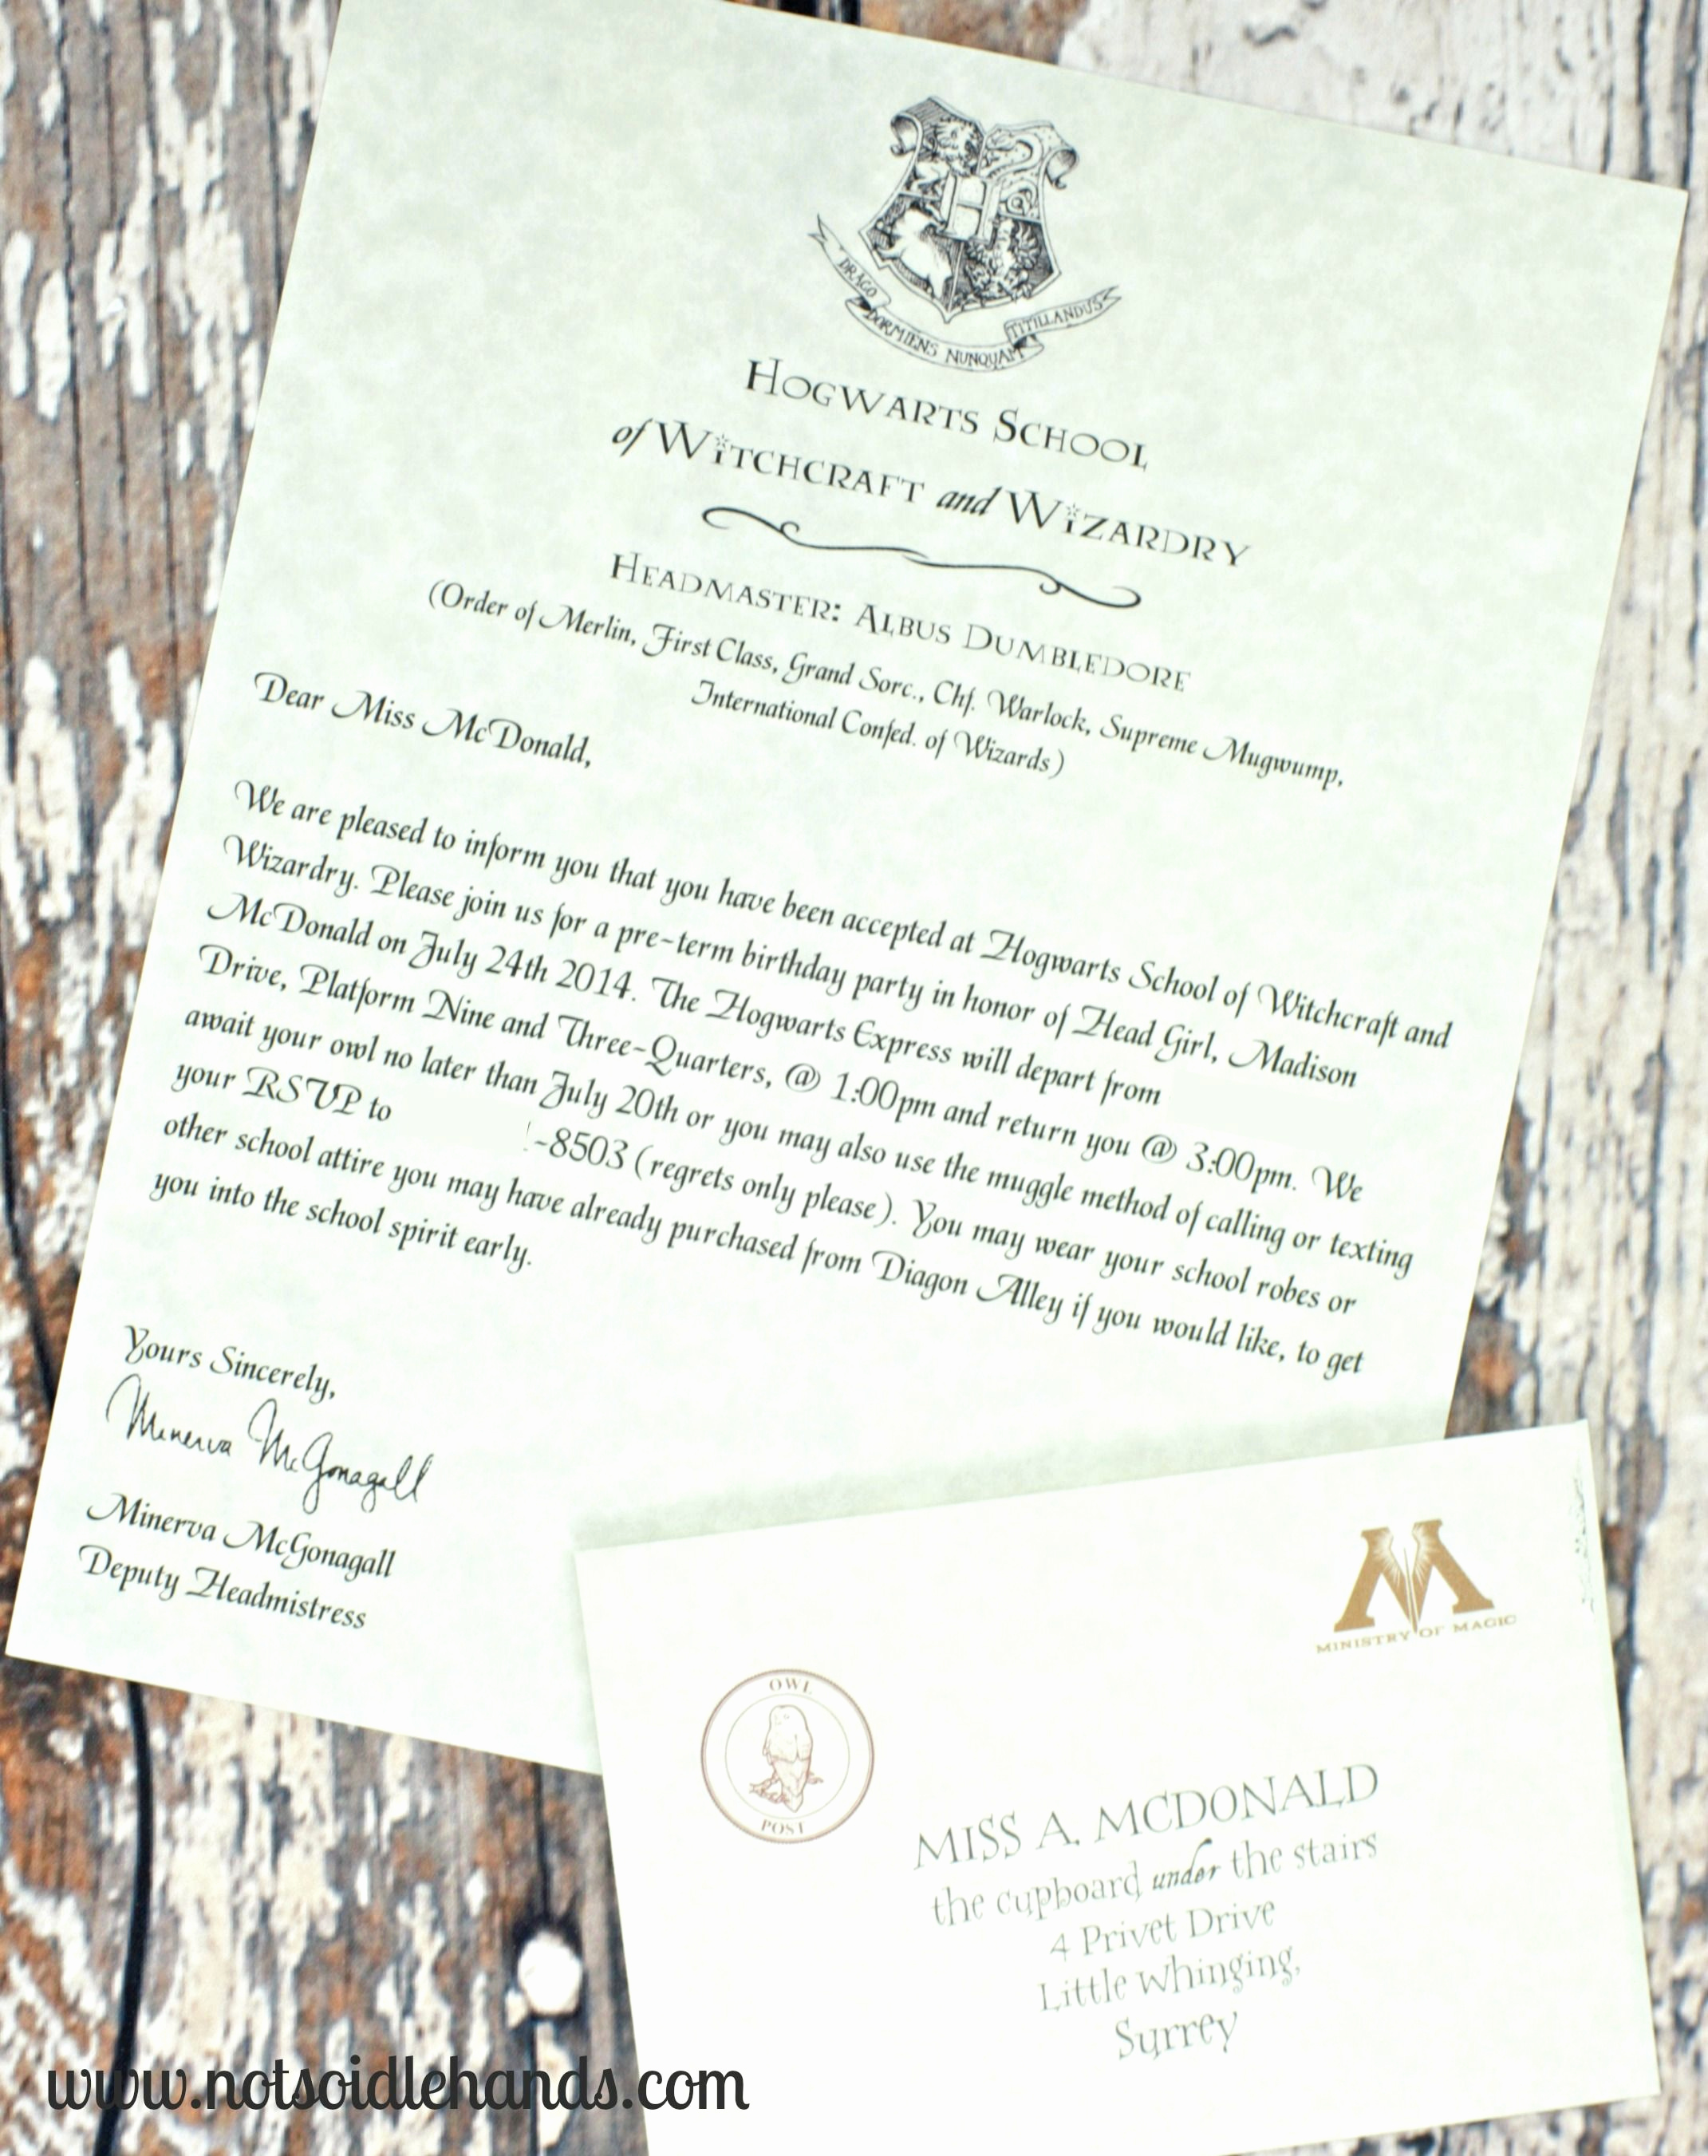 Harry Potter Invitation Letter New Harry Potter Birthday Invitations and Authentic Acceptance